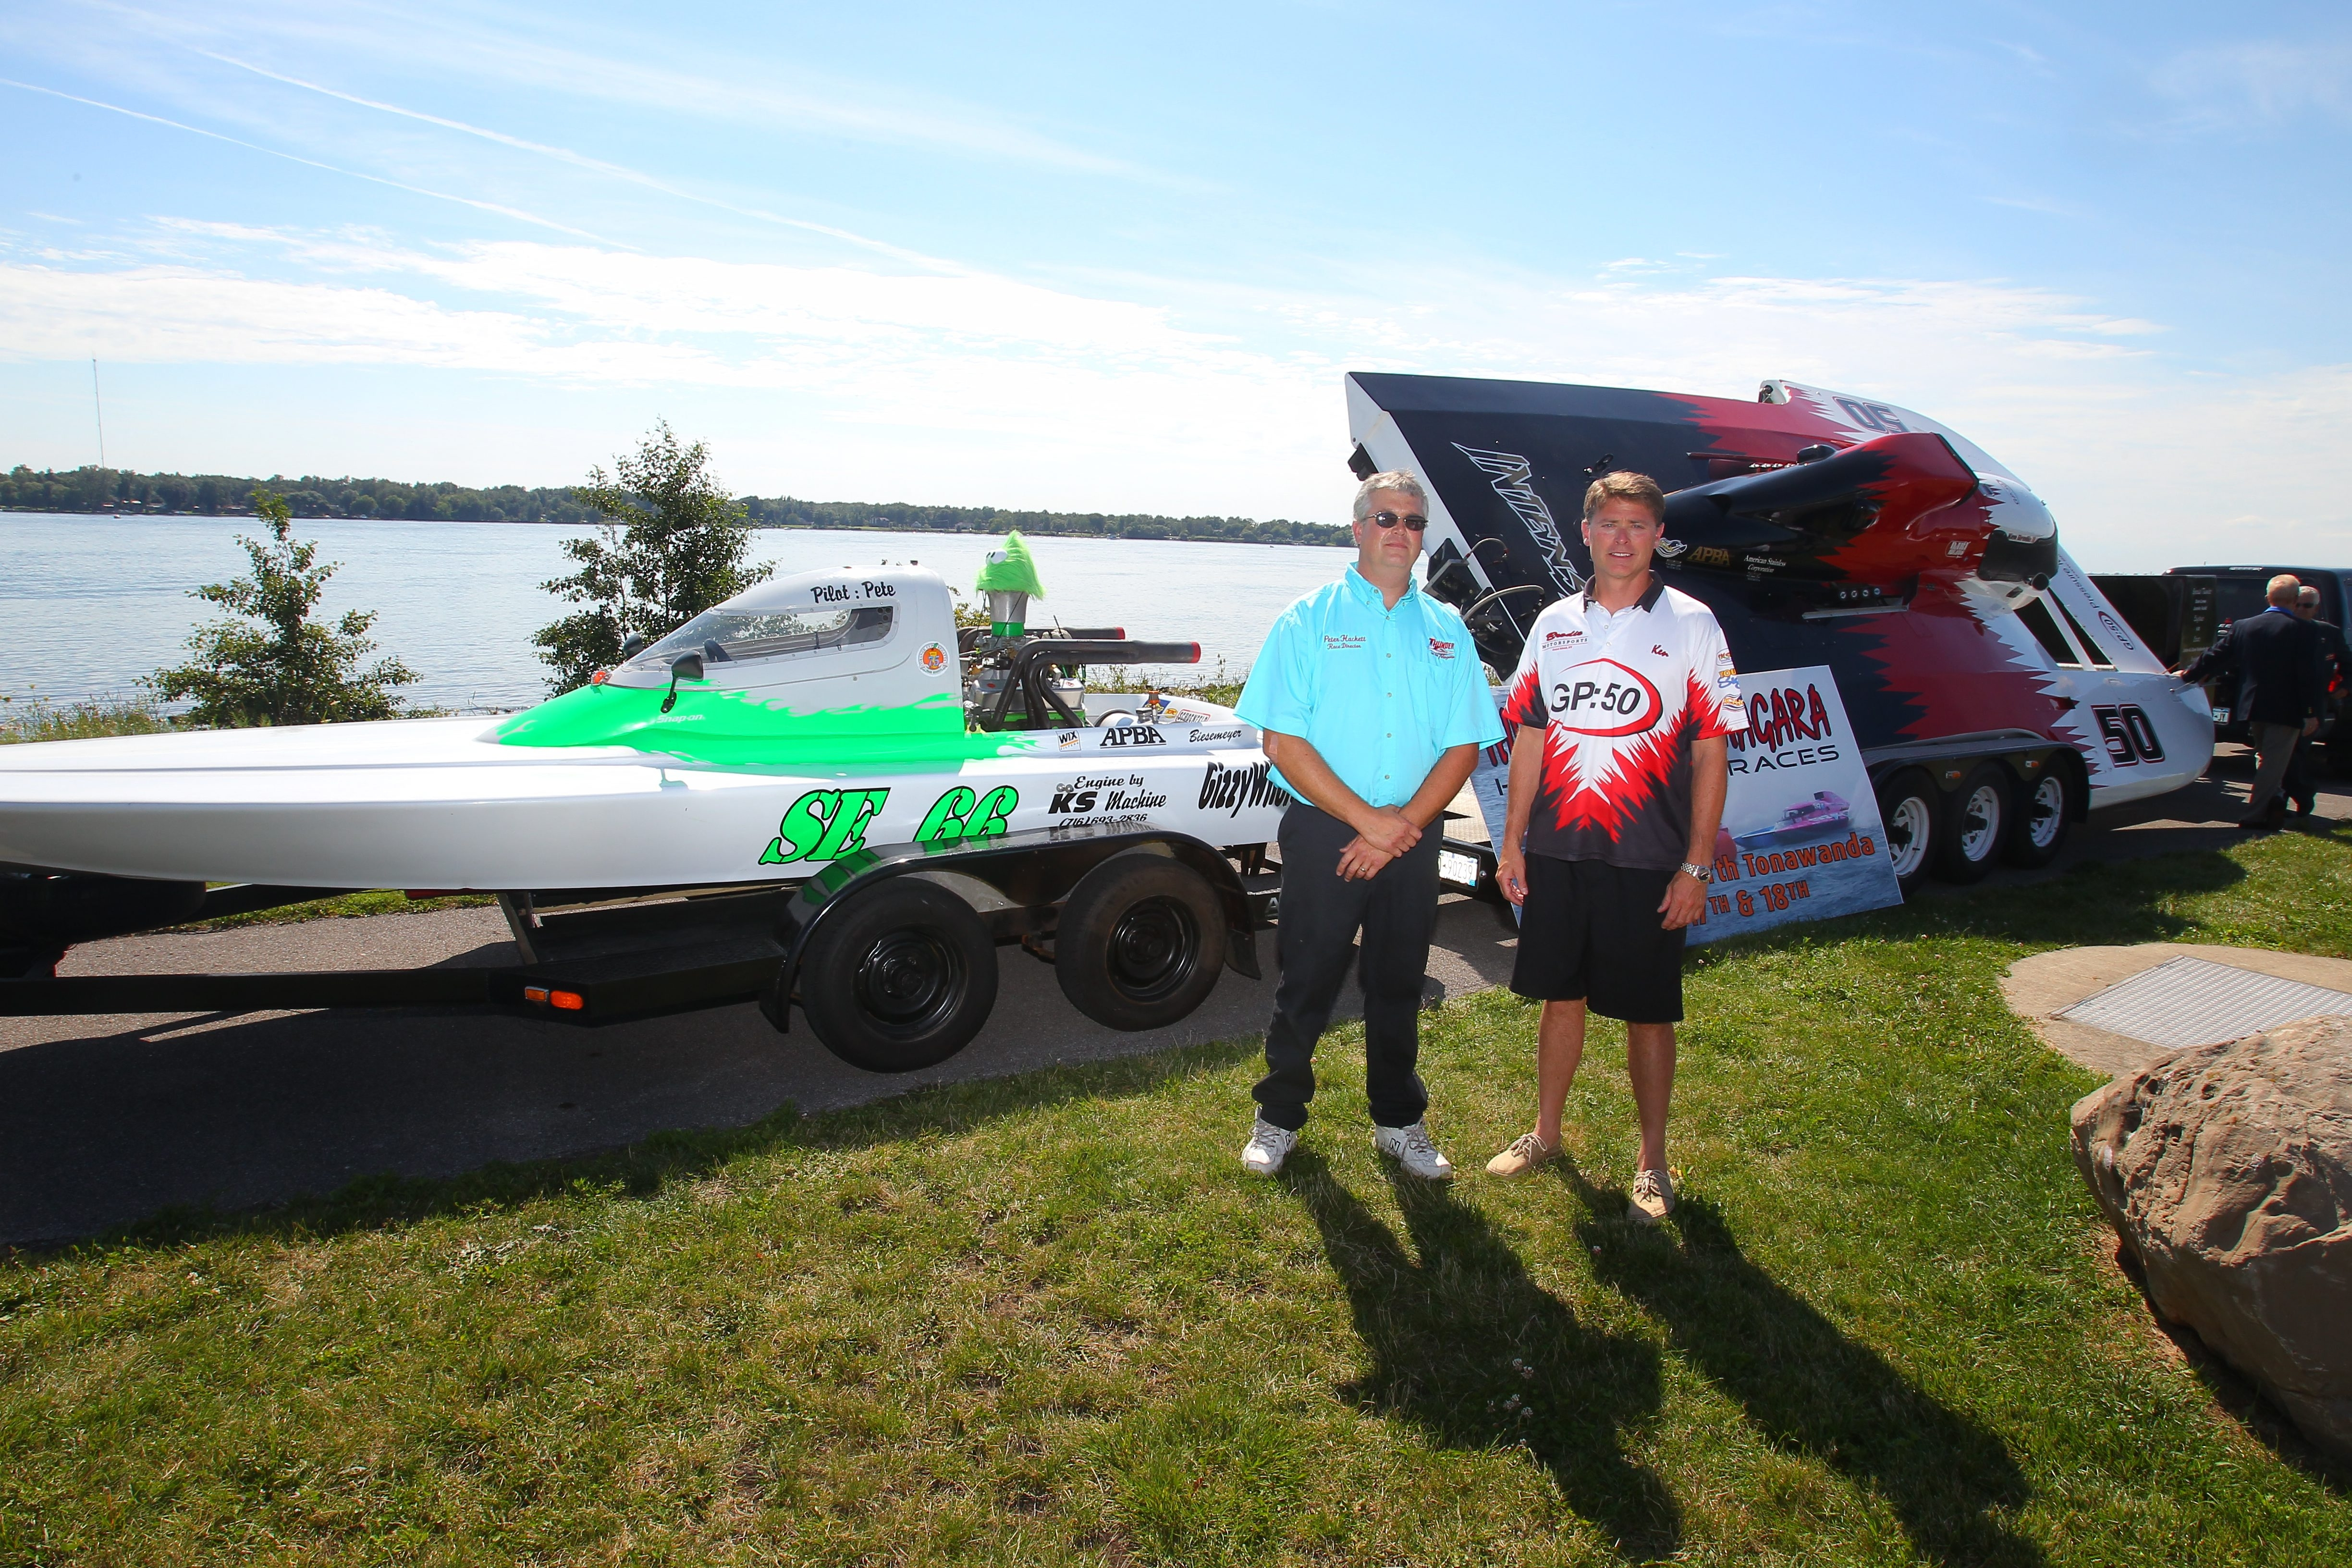 Peter Hackett, left, who races in the hydroplane Sportsman's Class, and Ken Brodie II, who races in the Grand Prix Class, attend a Thunder on the Niagara news conference at Gratwick-Riverside Park in North Tonawanda.